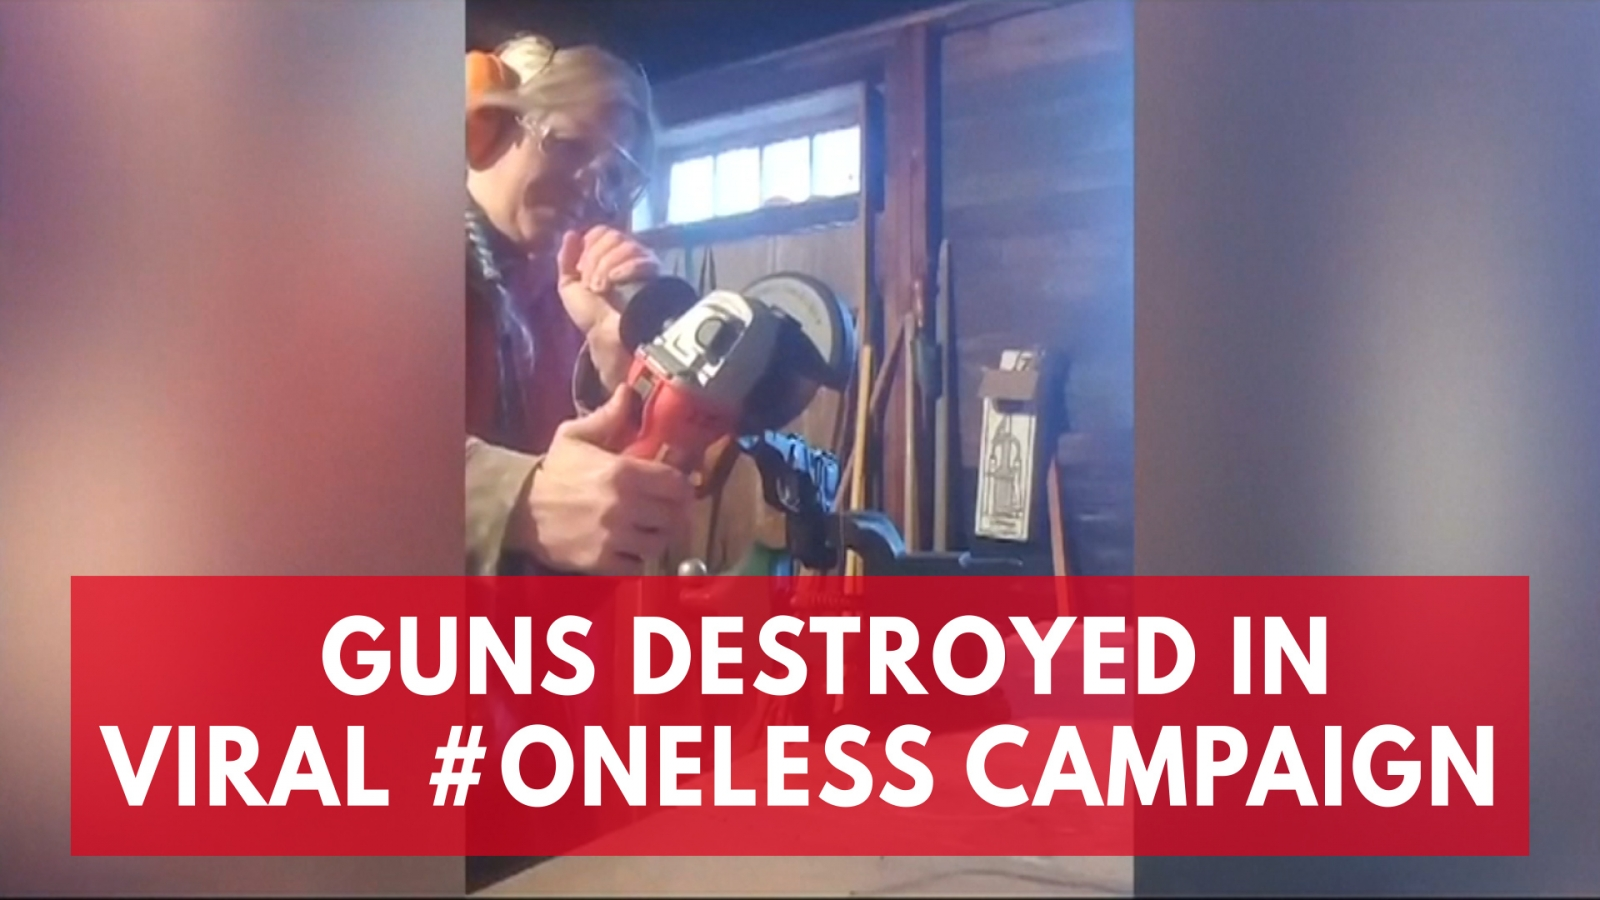 Guns destroyed in viral #Oneless campaign